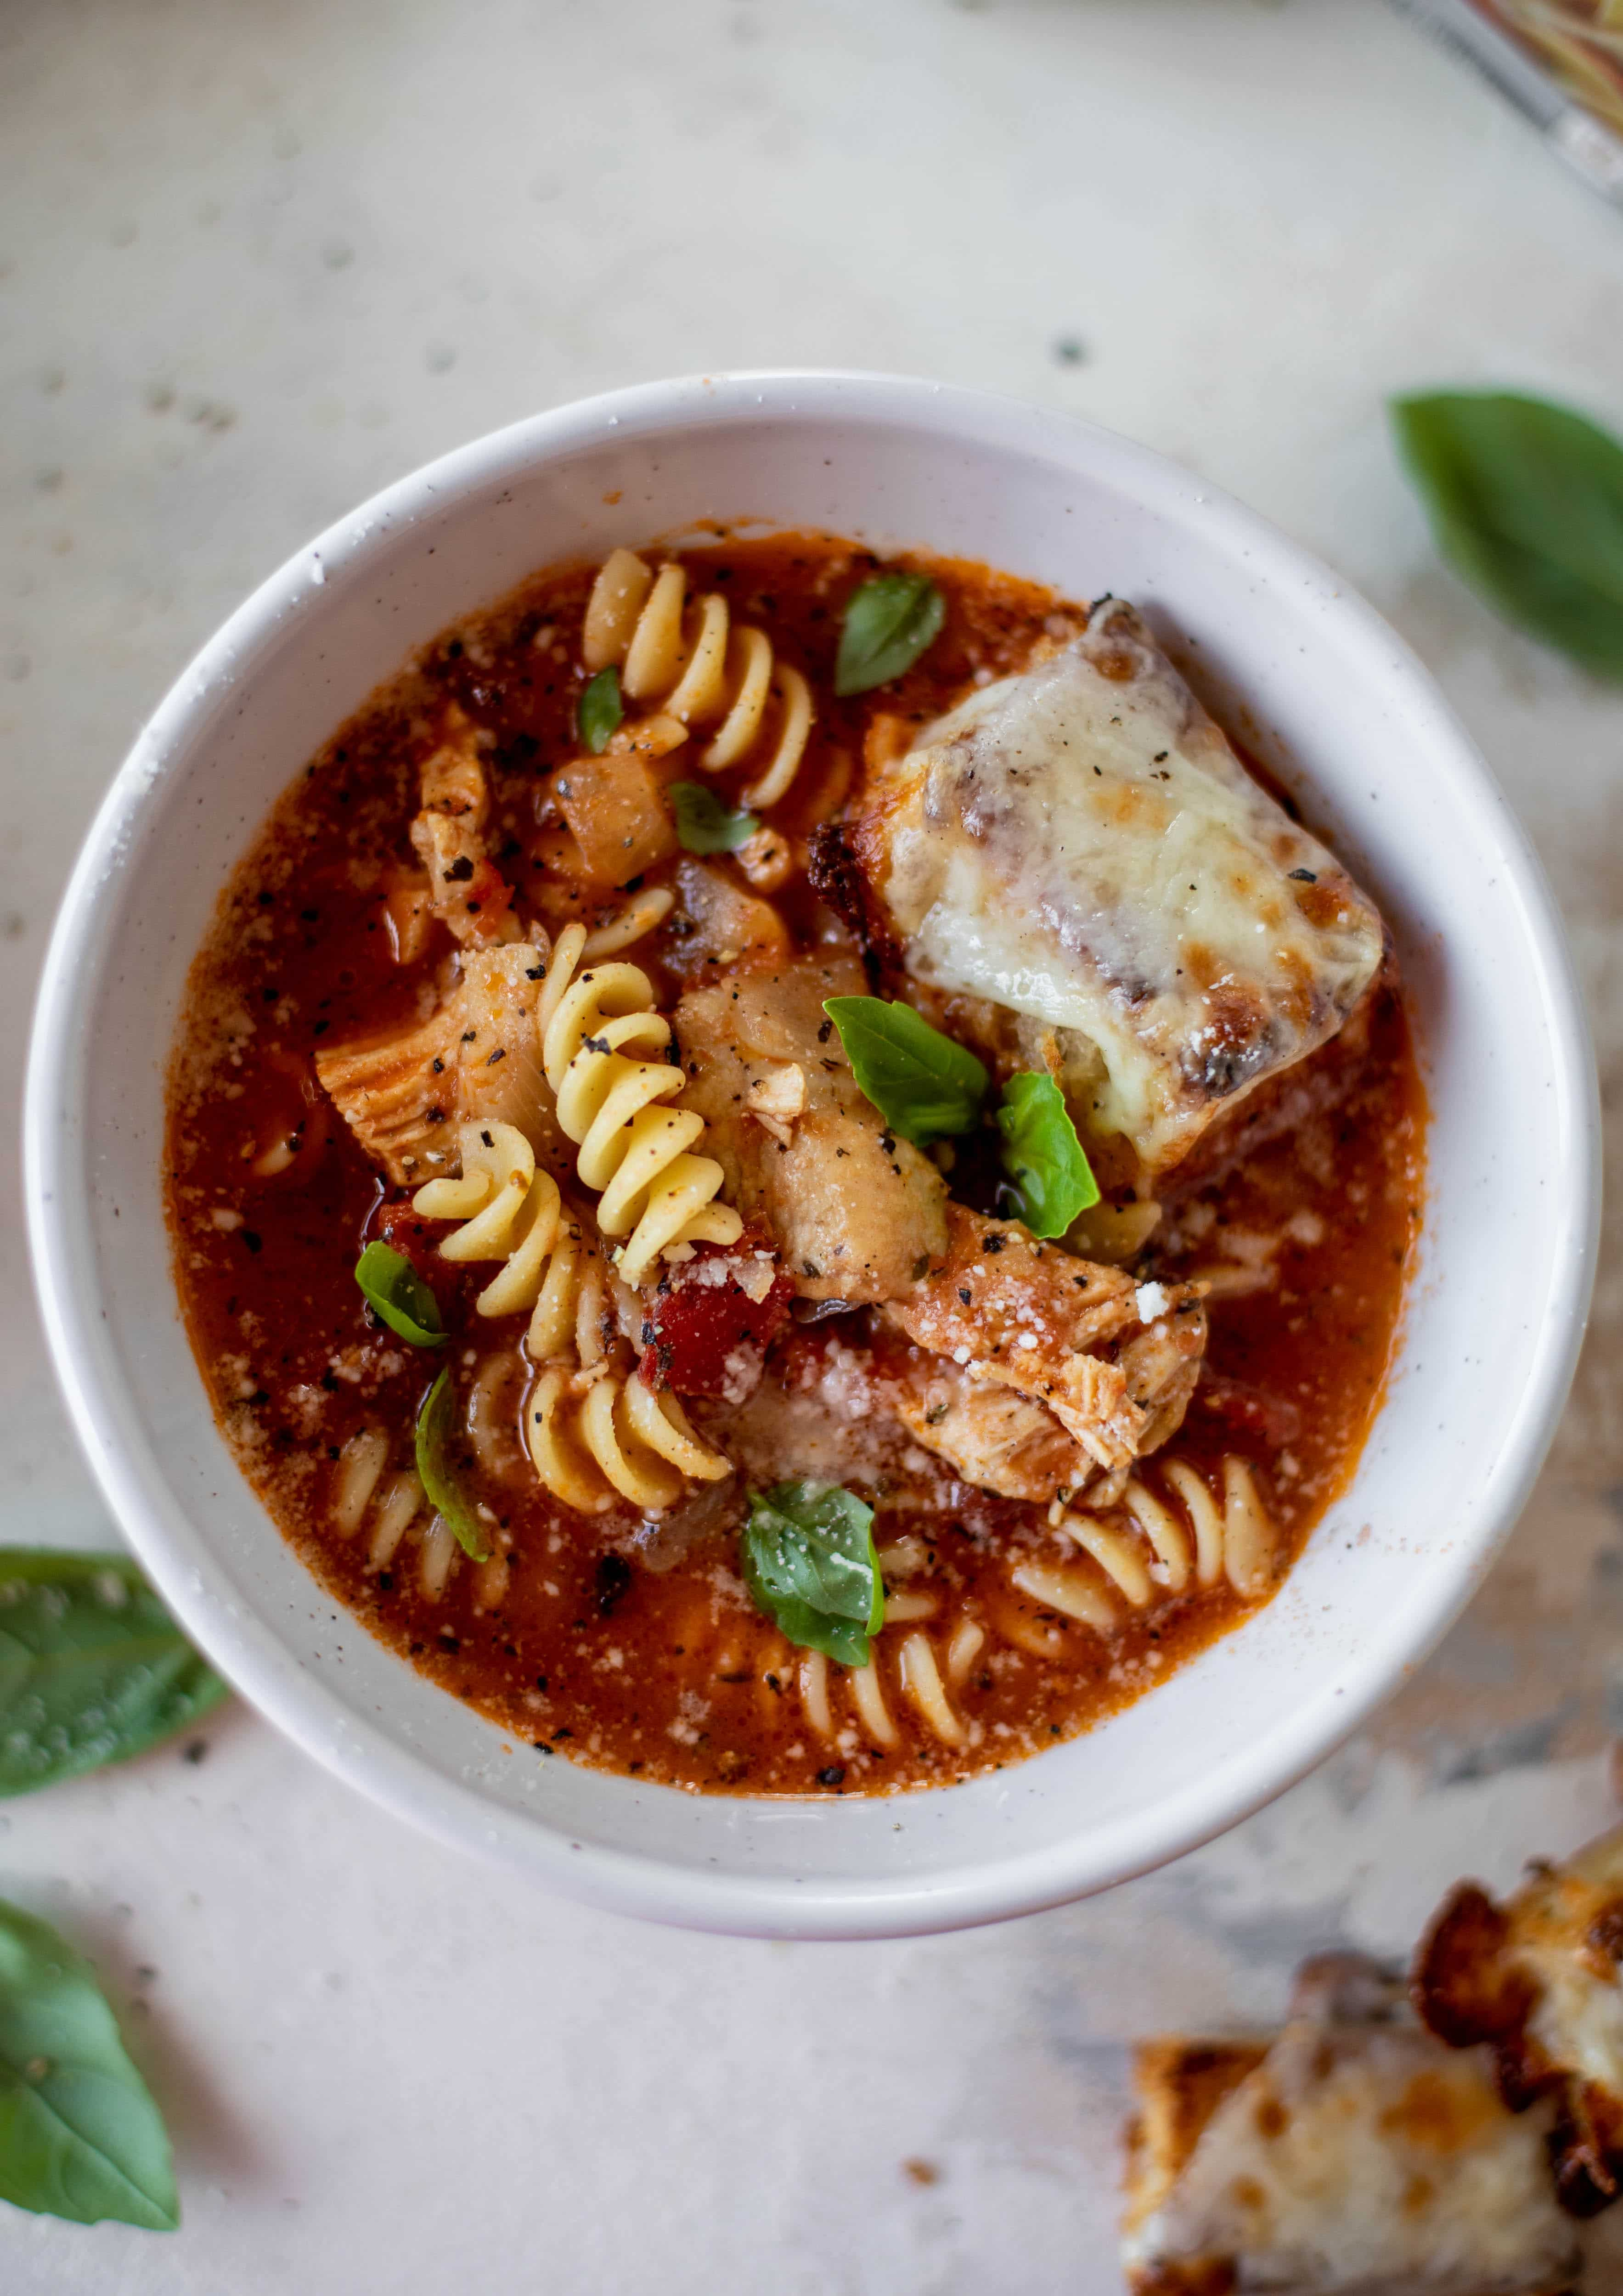 This chicken parmesan soup is ridiculously flavorful and so easy to make! Juicy chicken with pasta, fire roasted tomatoes and mozzarella croutons. Yum!